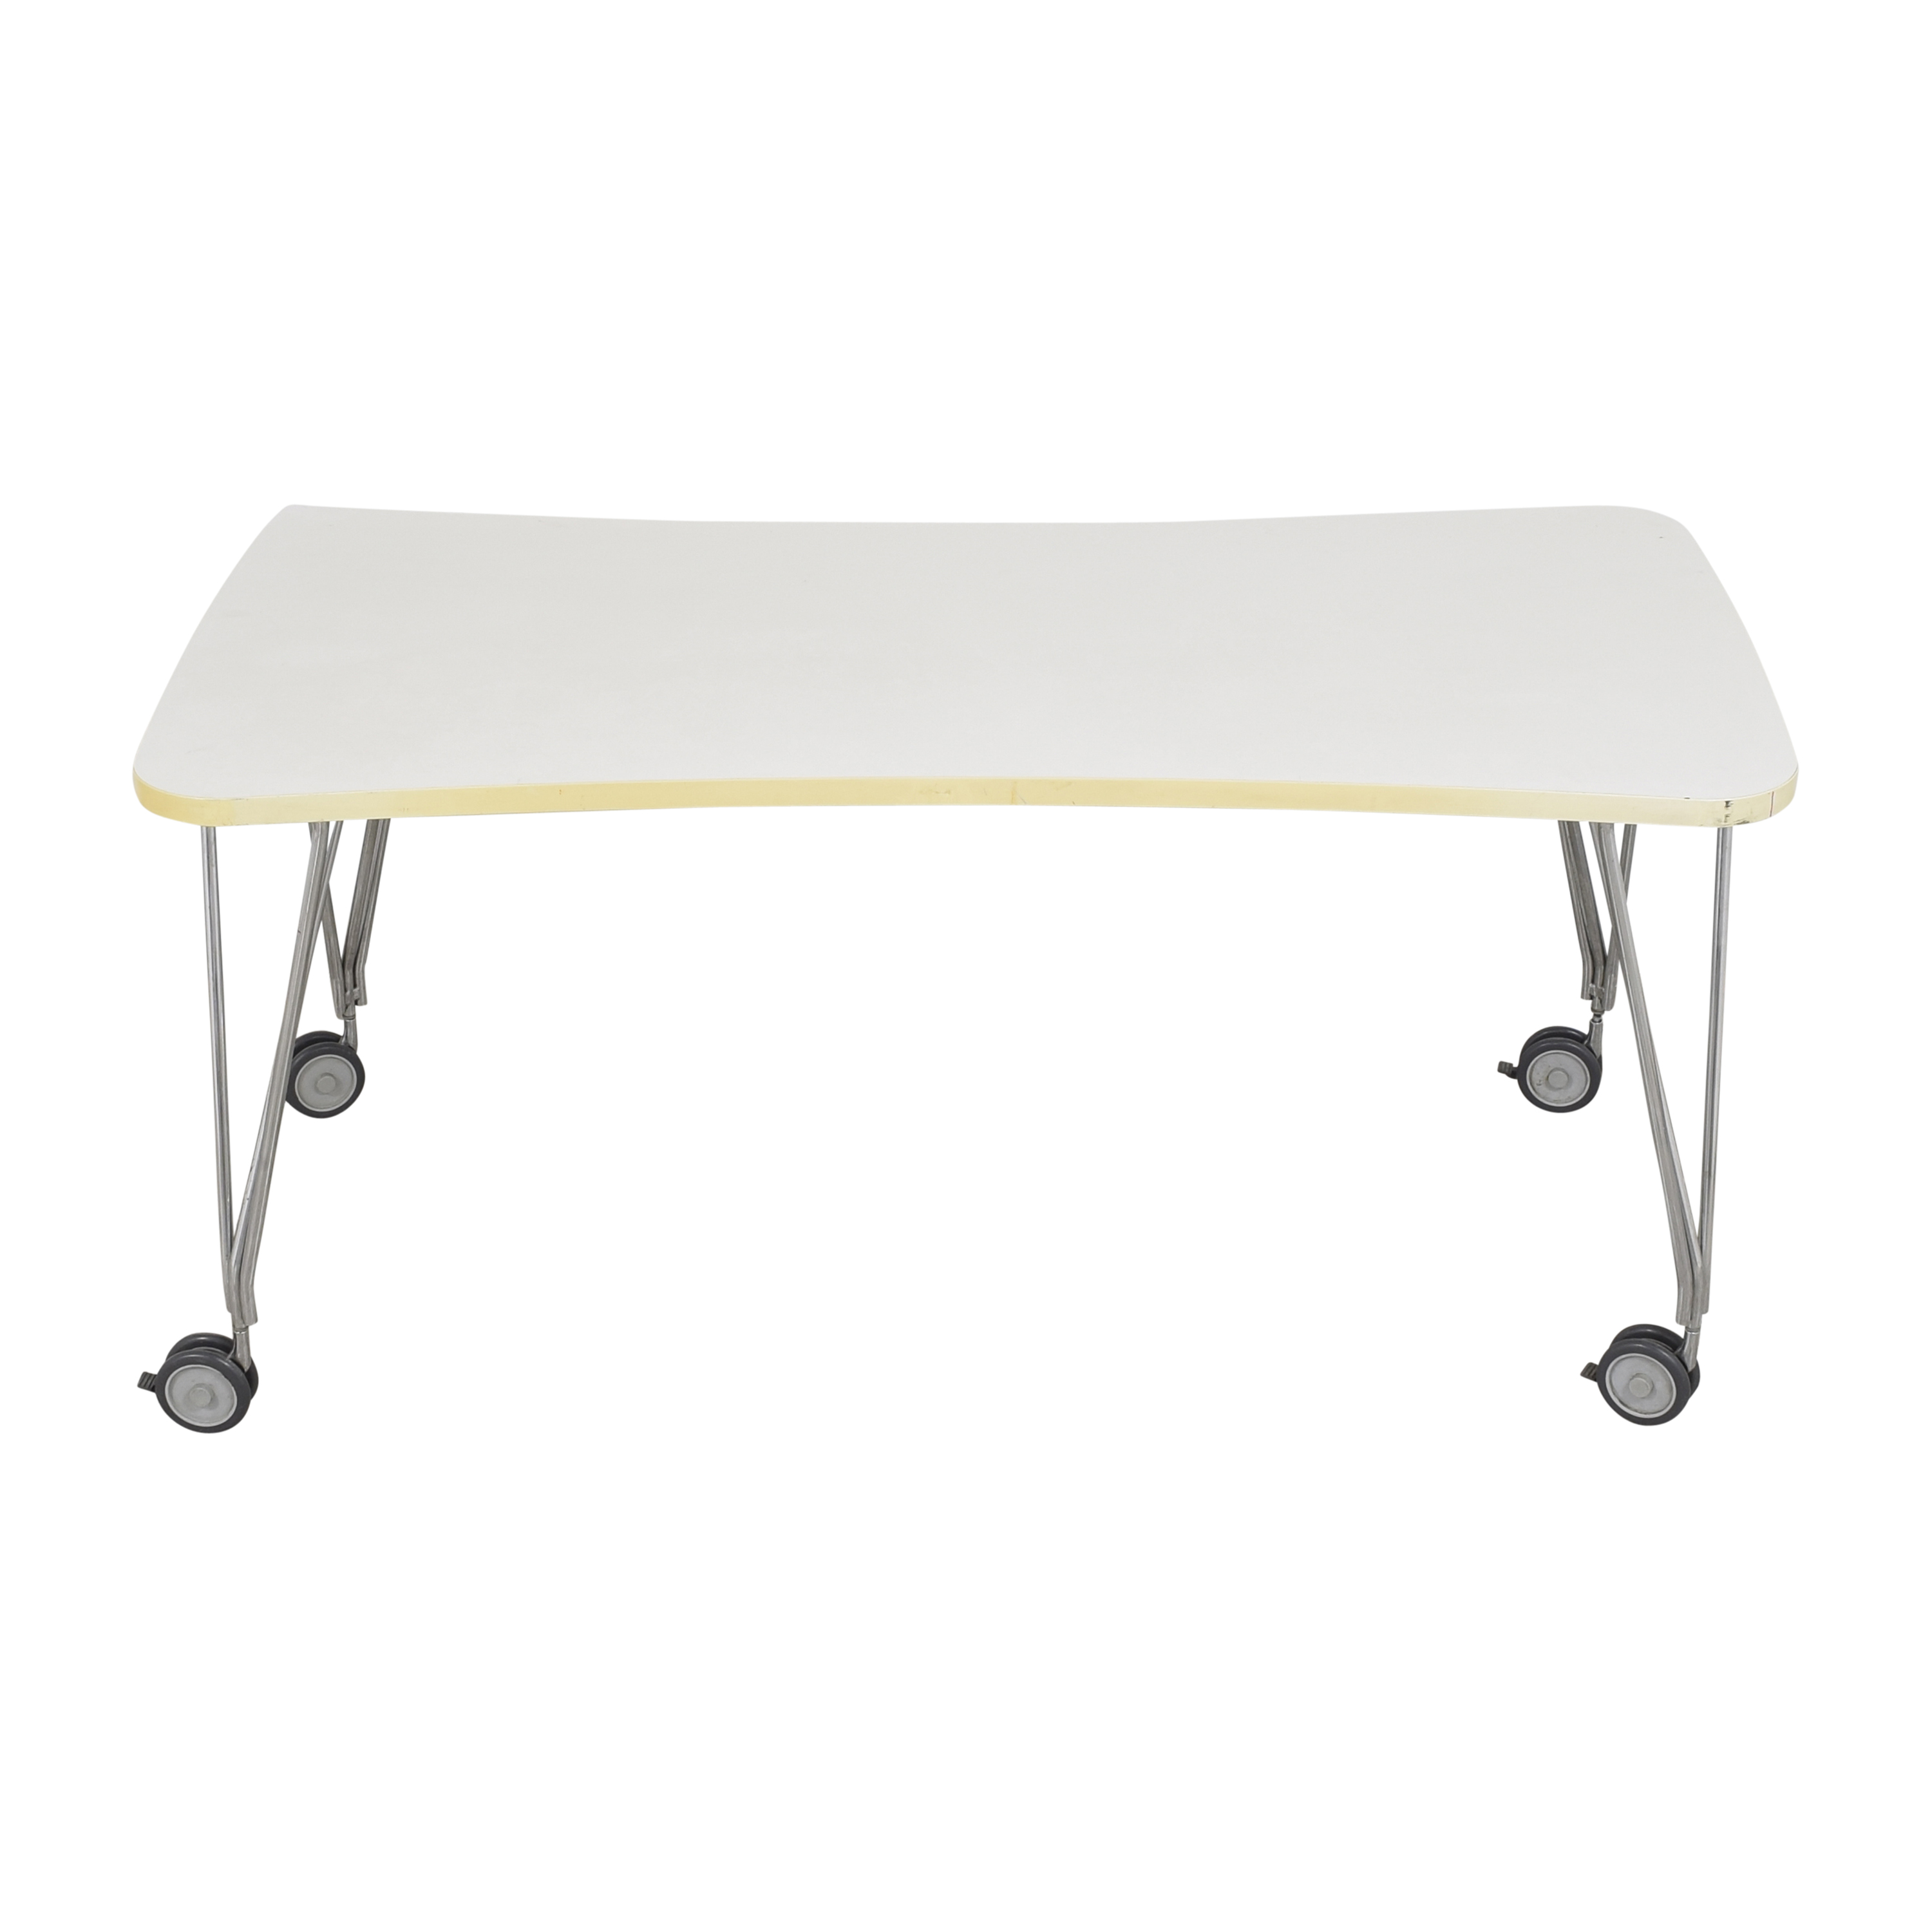 Kartell Kartell Max Table with Wheels white